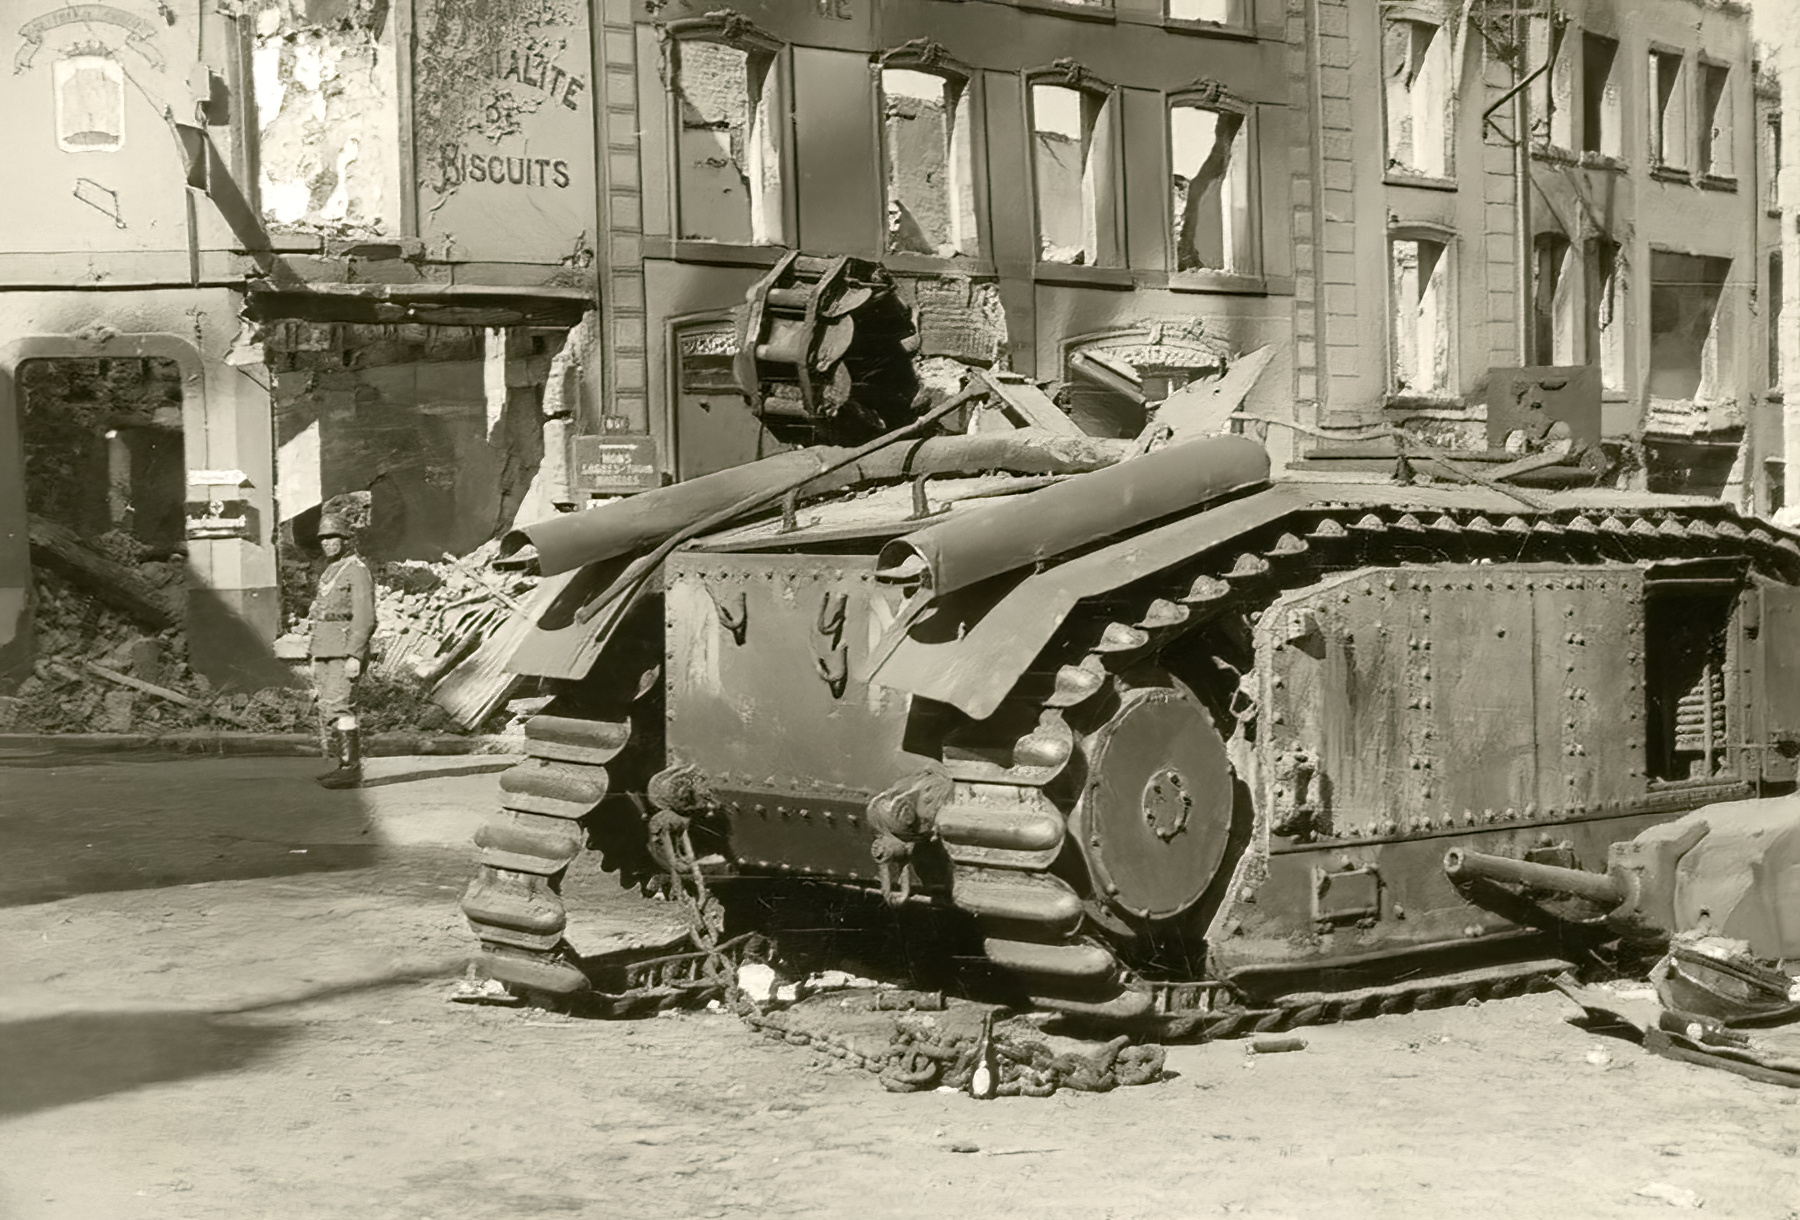 French Army Renault Char B1 knocked out during the battle of France 1940 ebay 01